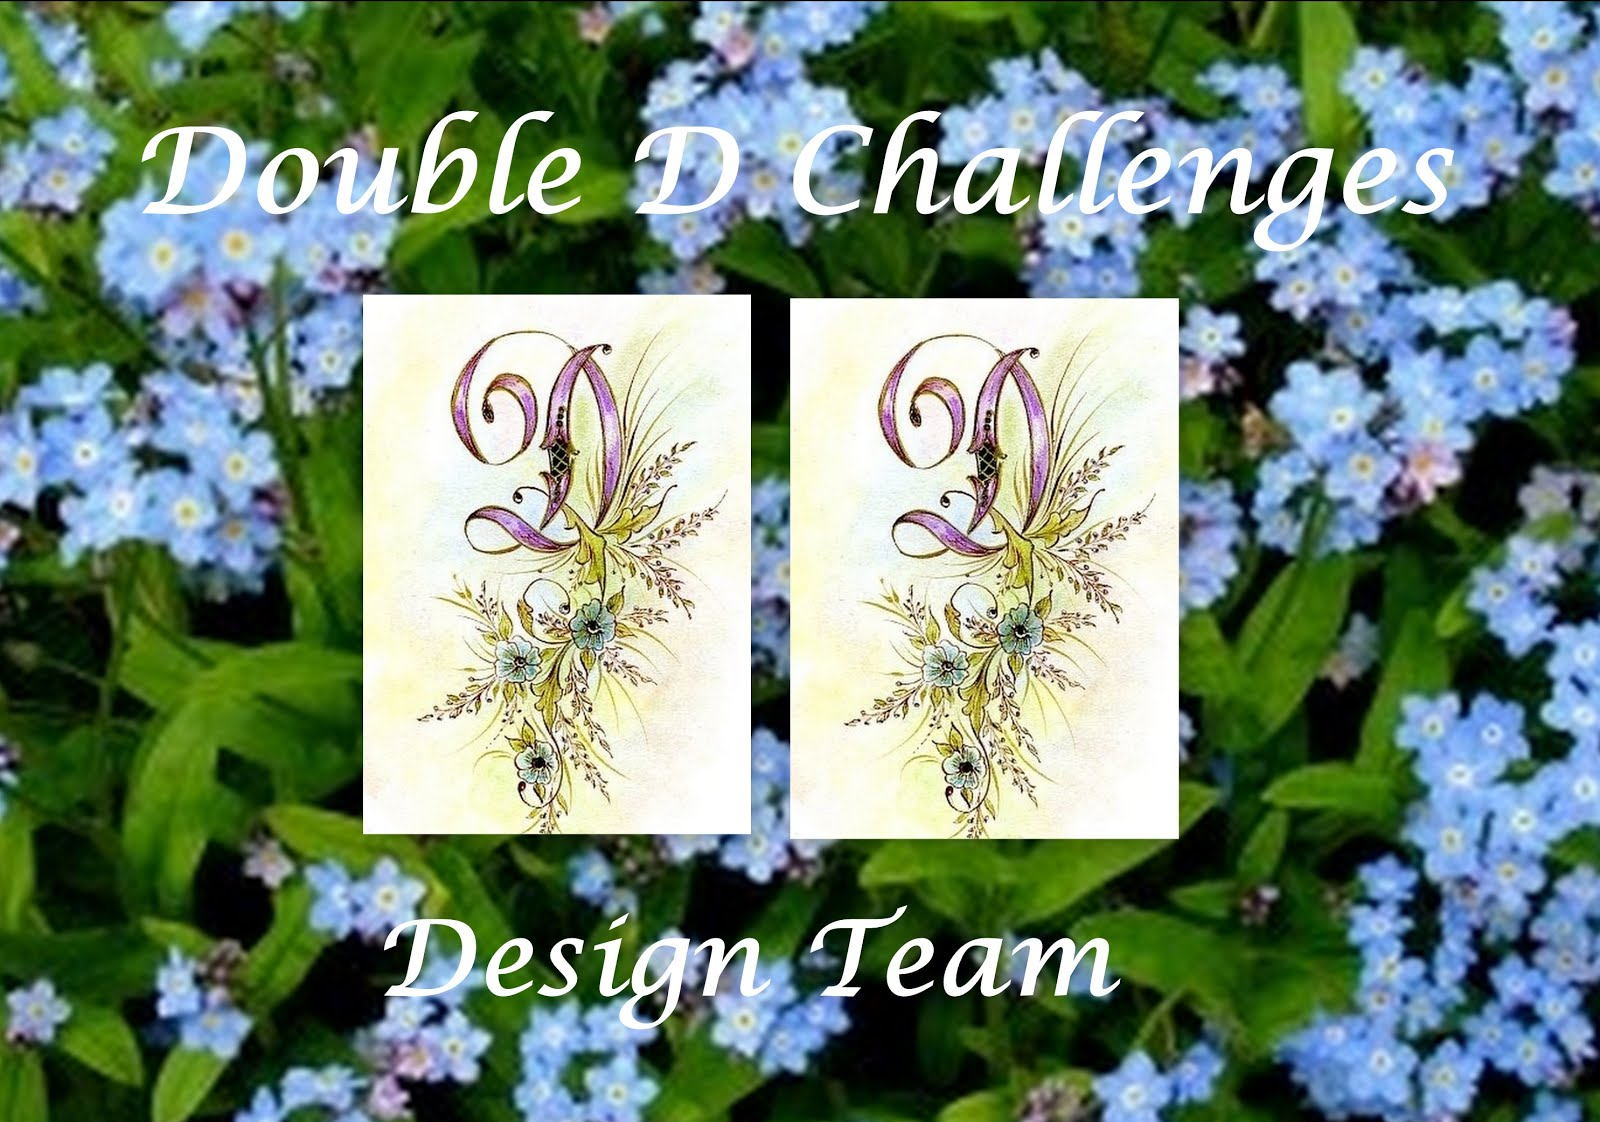 Double D Design Team